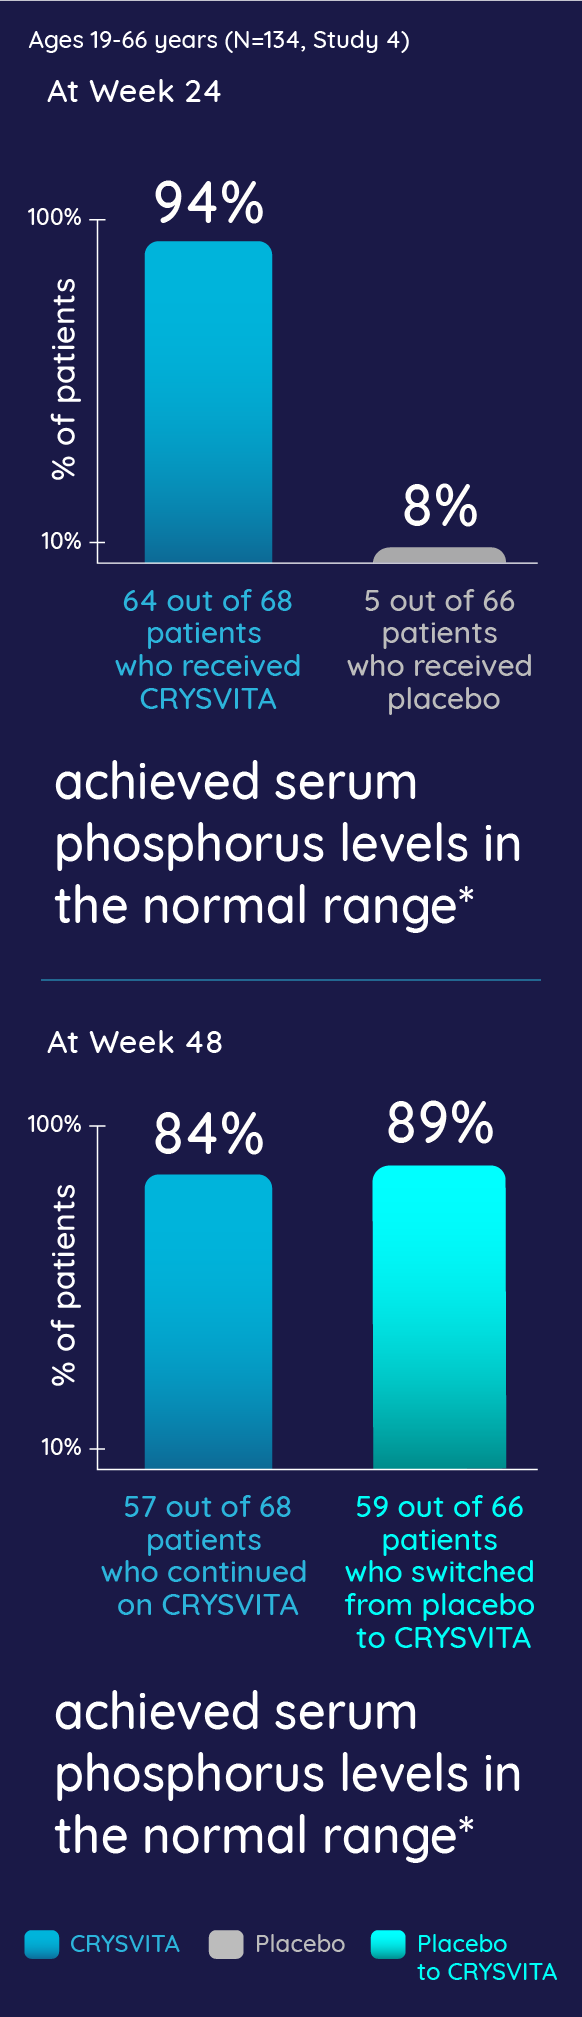 94% of patients achieved serum phosphorus levels in the normal range compared to 8% in placebo